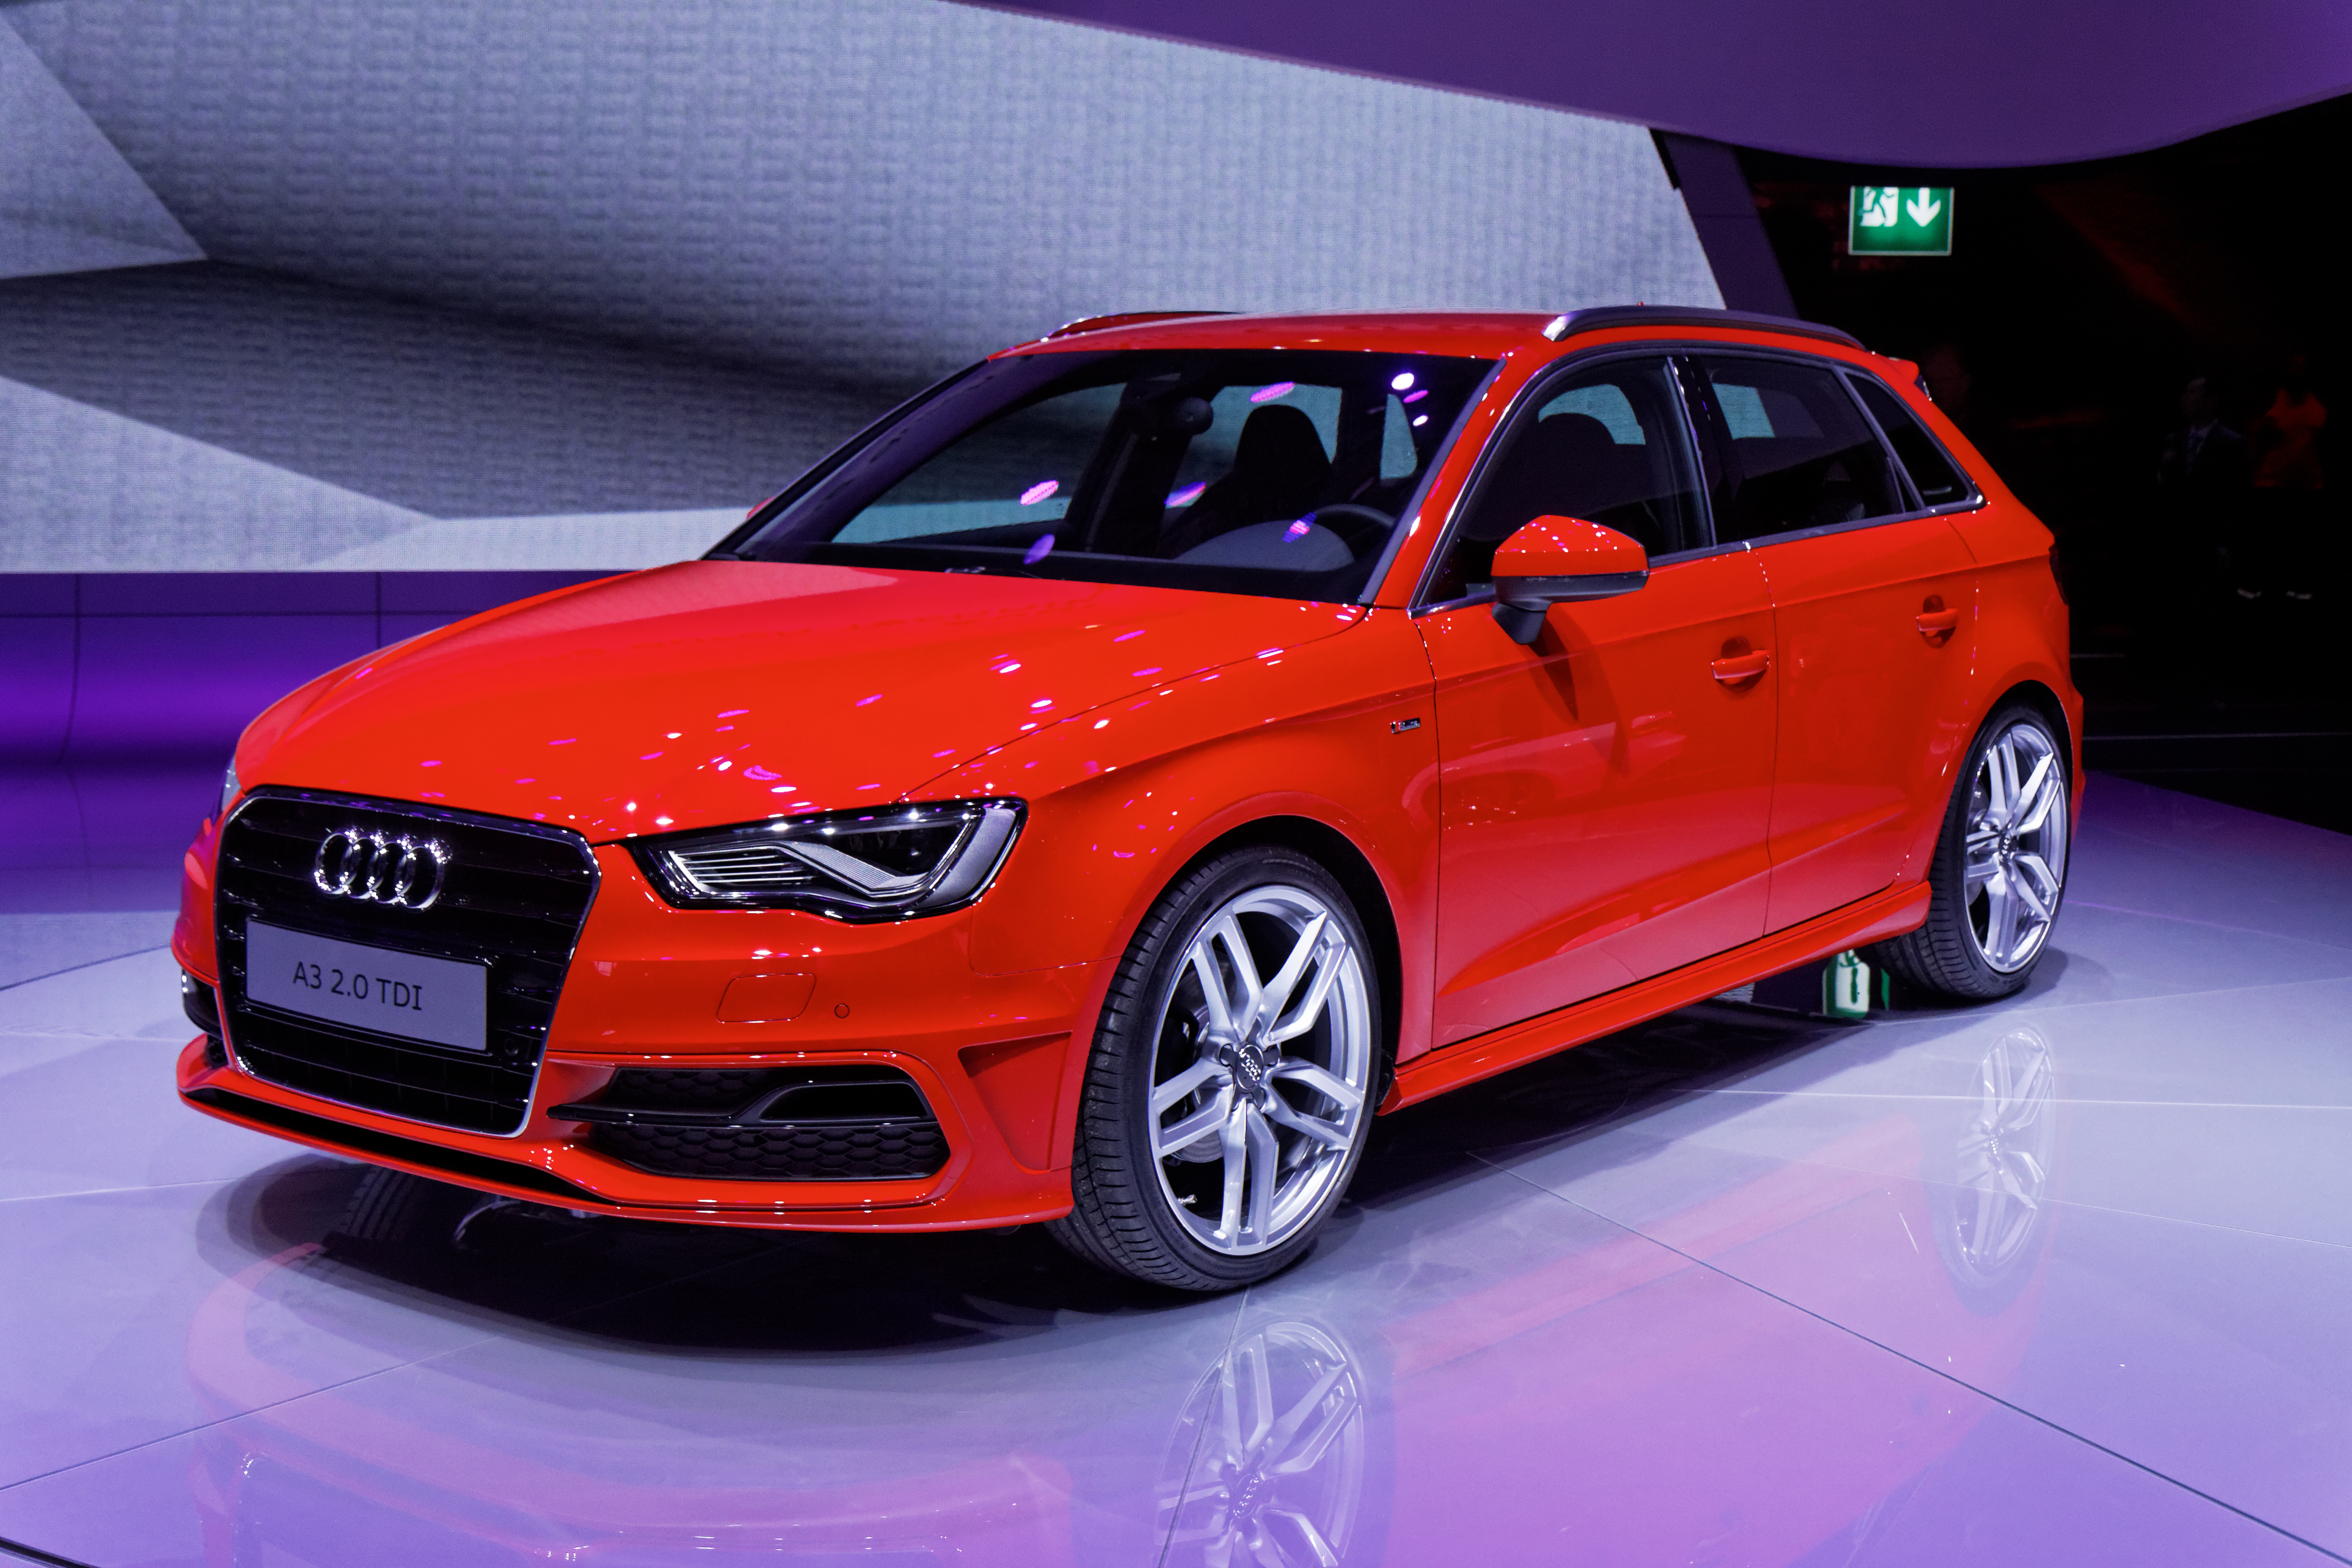 audi wallpaper images new wallpapers and automobiles car